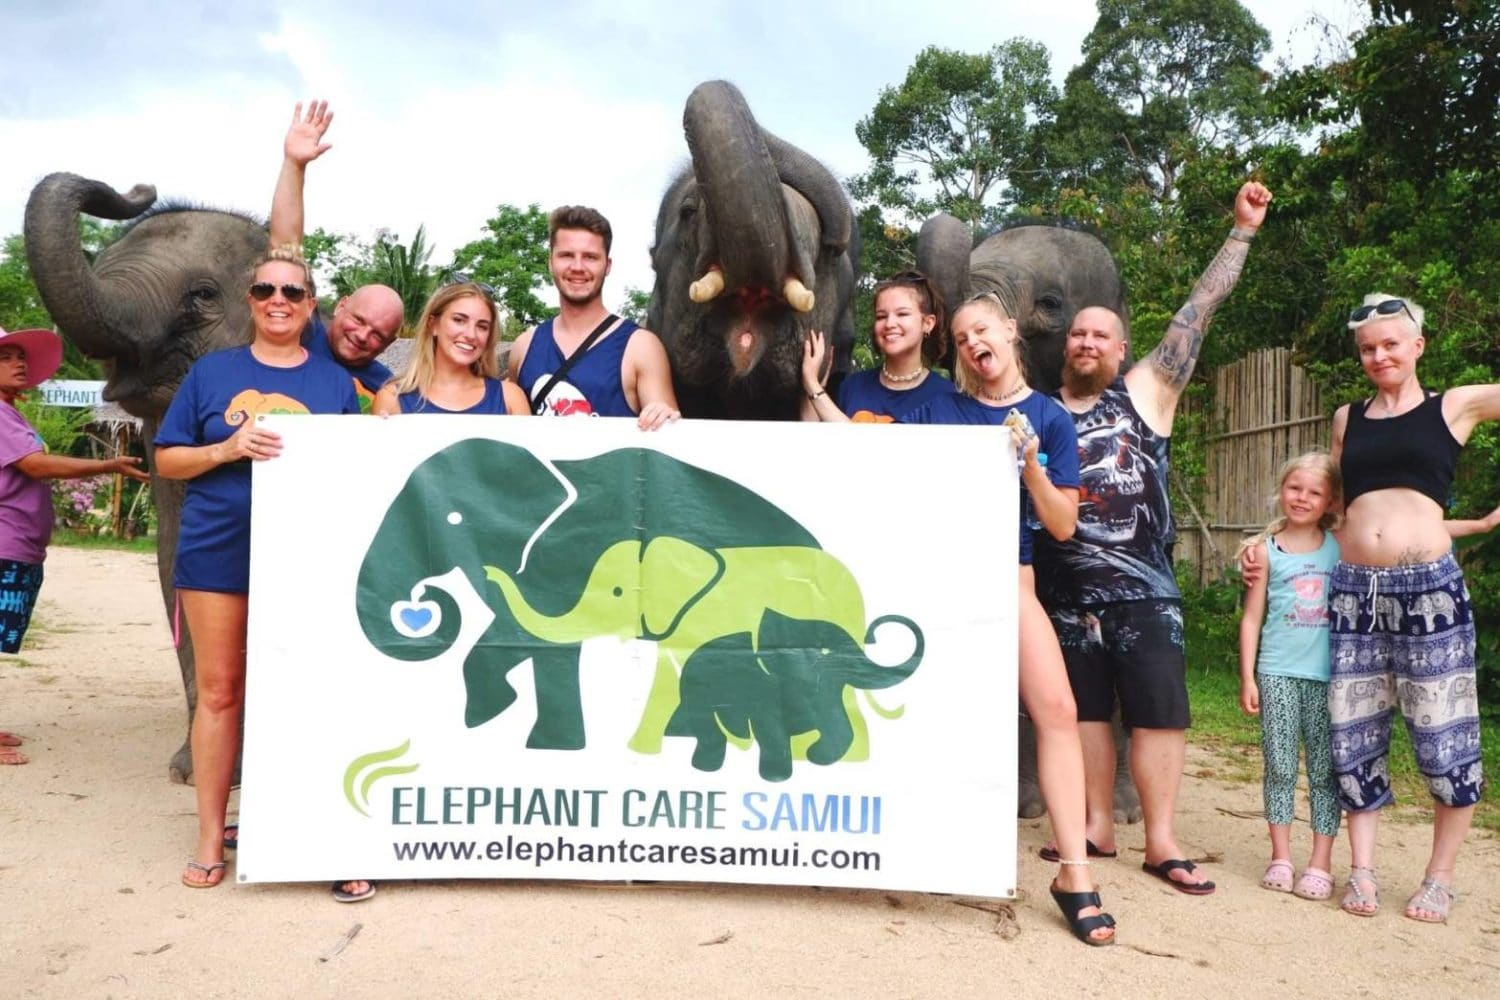 elephant-care-samui-01